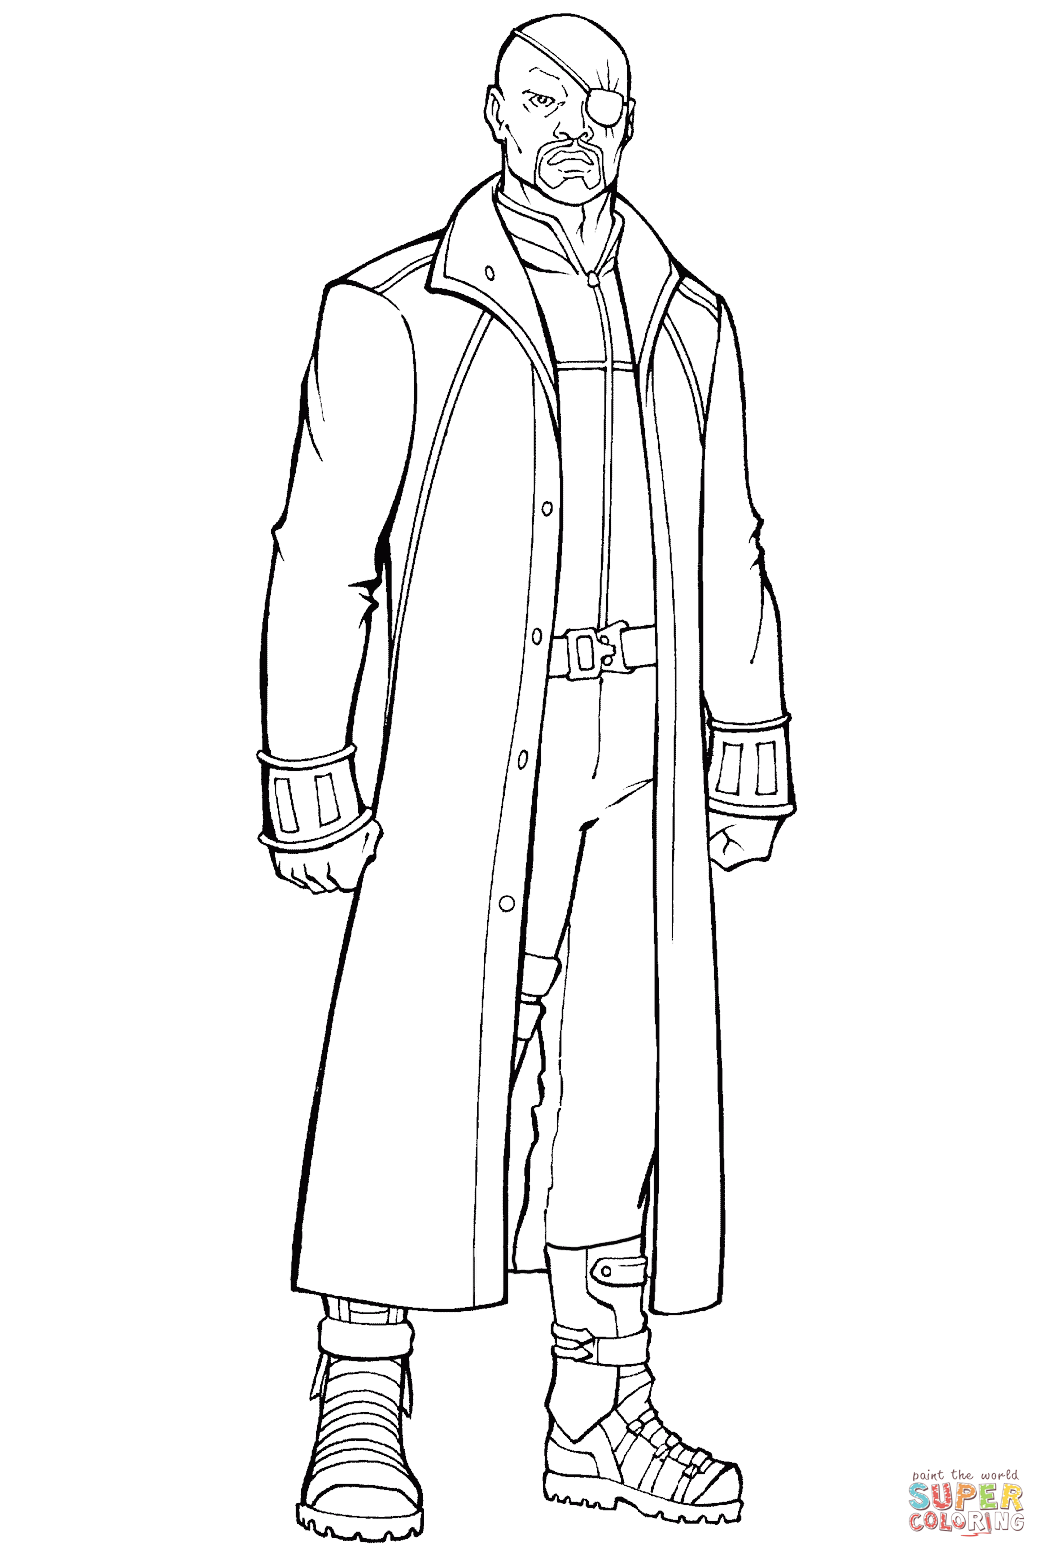 nick fury director of the s h i e d agency coloring page